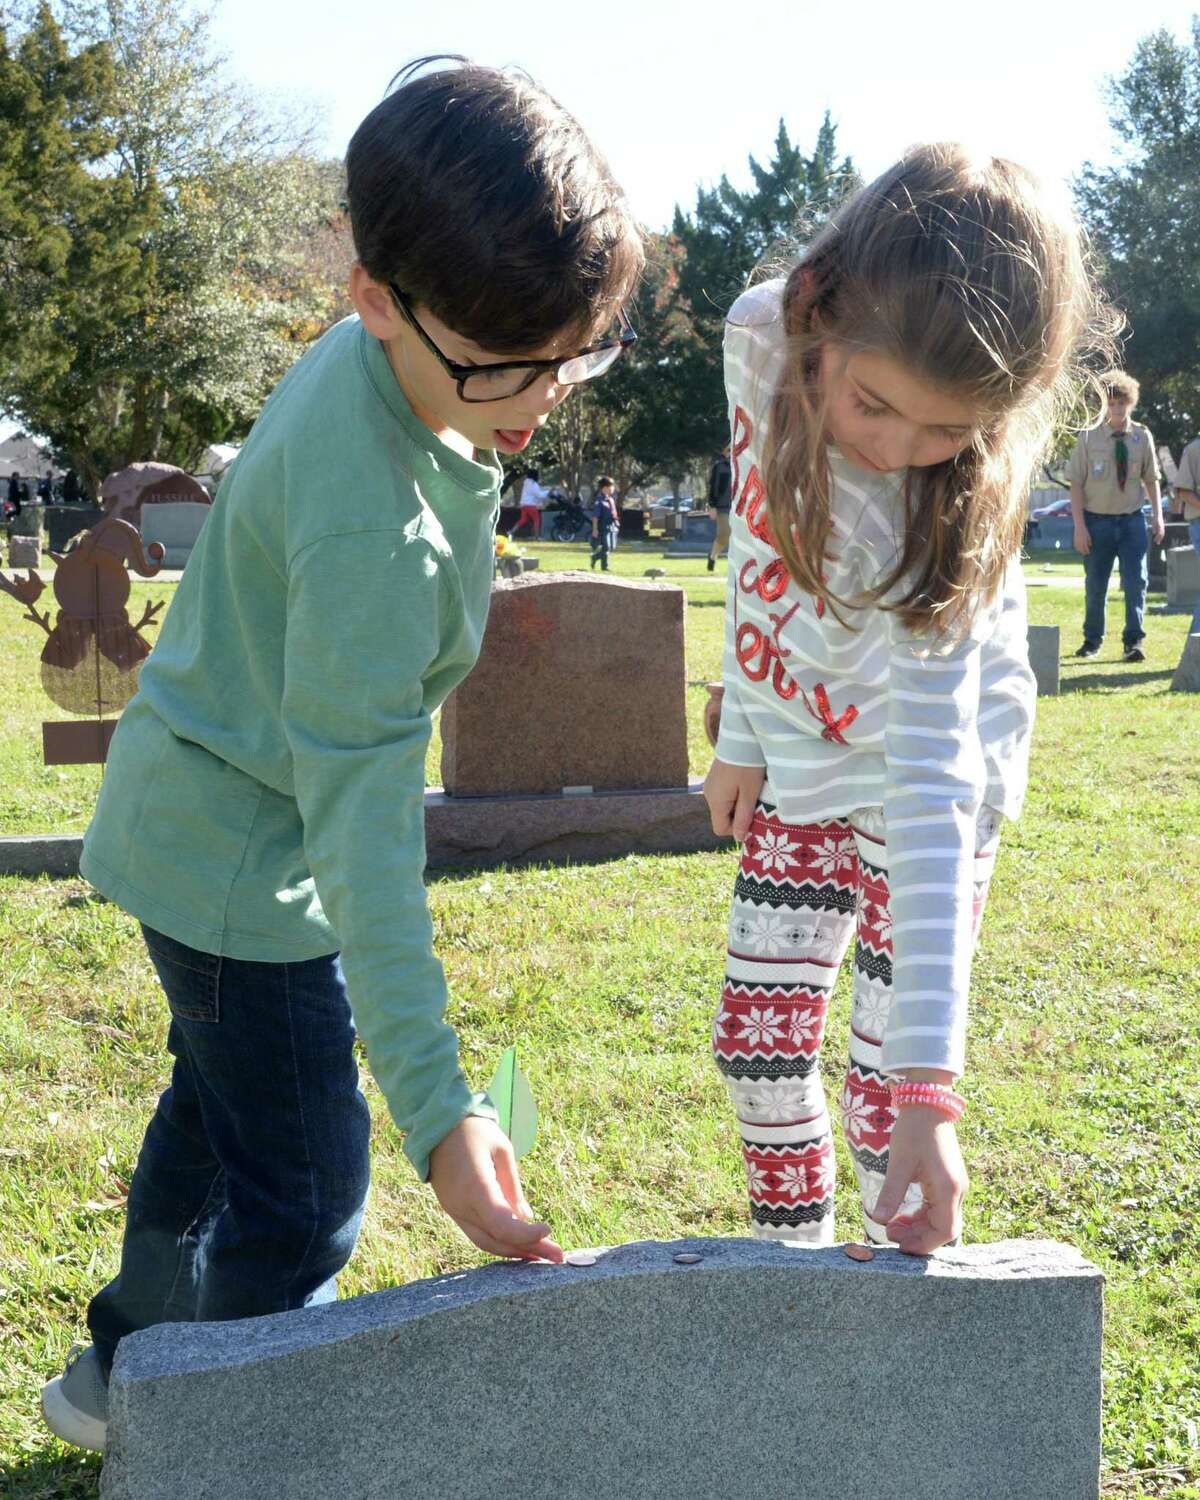 Blake (8) and Avery (10) Torrey place pennies on a grave during the National Wreaths Across America Ceremony at Magnolia Cemetery, Saturday, December 14, 2019 in Katy, TX.